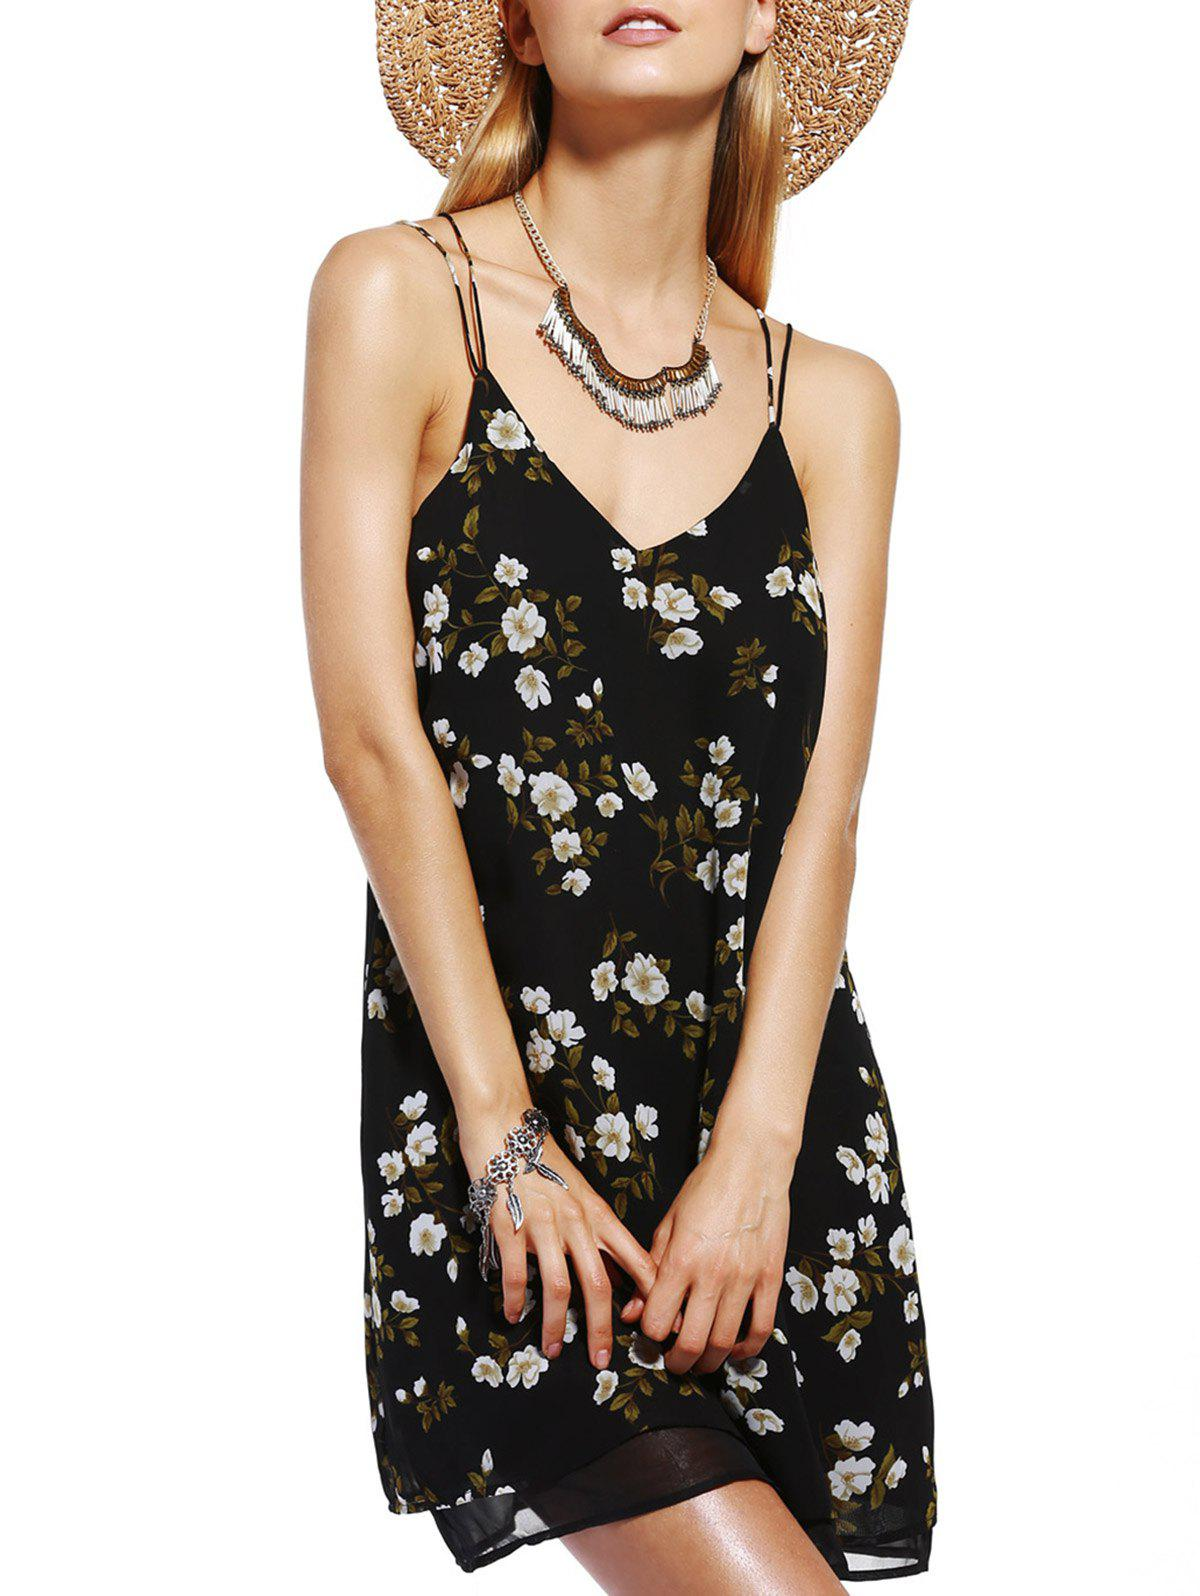 Chic Women's V-Neck Spaghetti Strap Tropical Print Dress - BLACK L